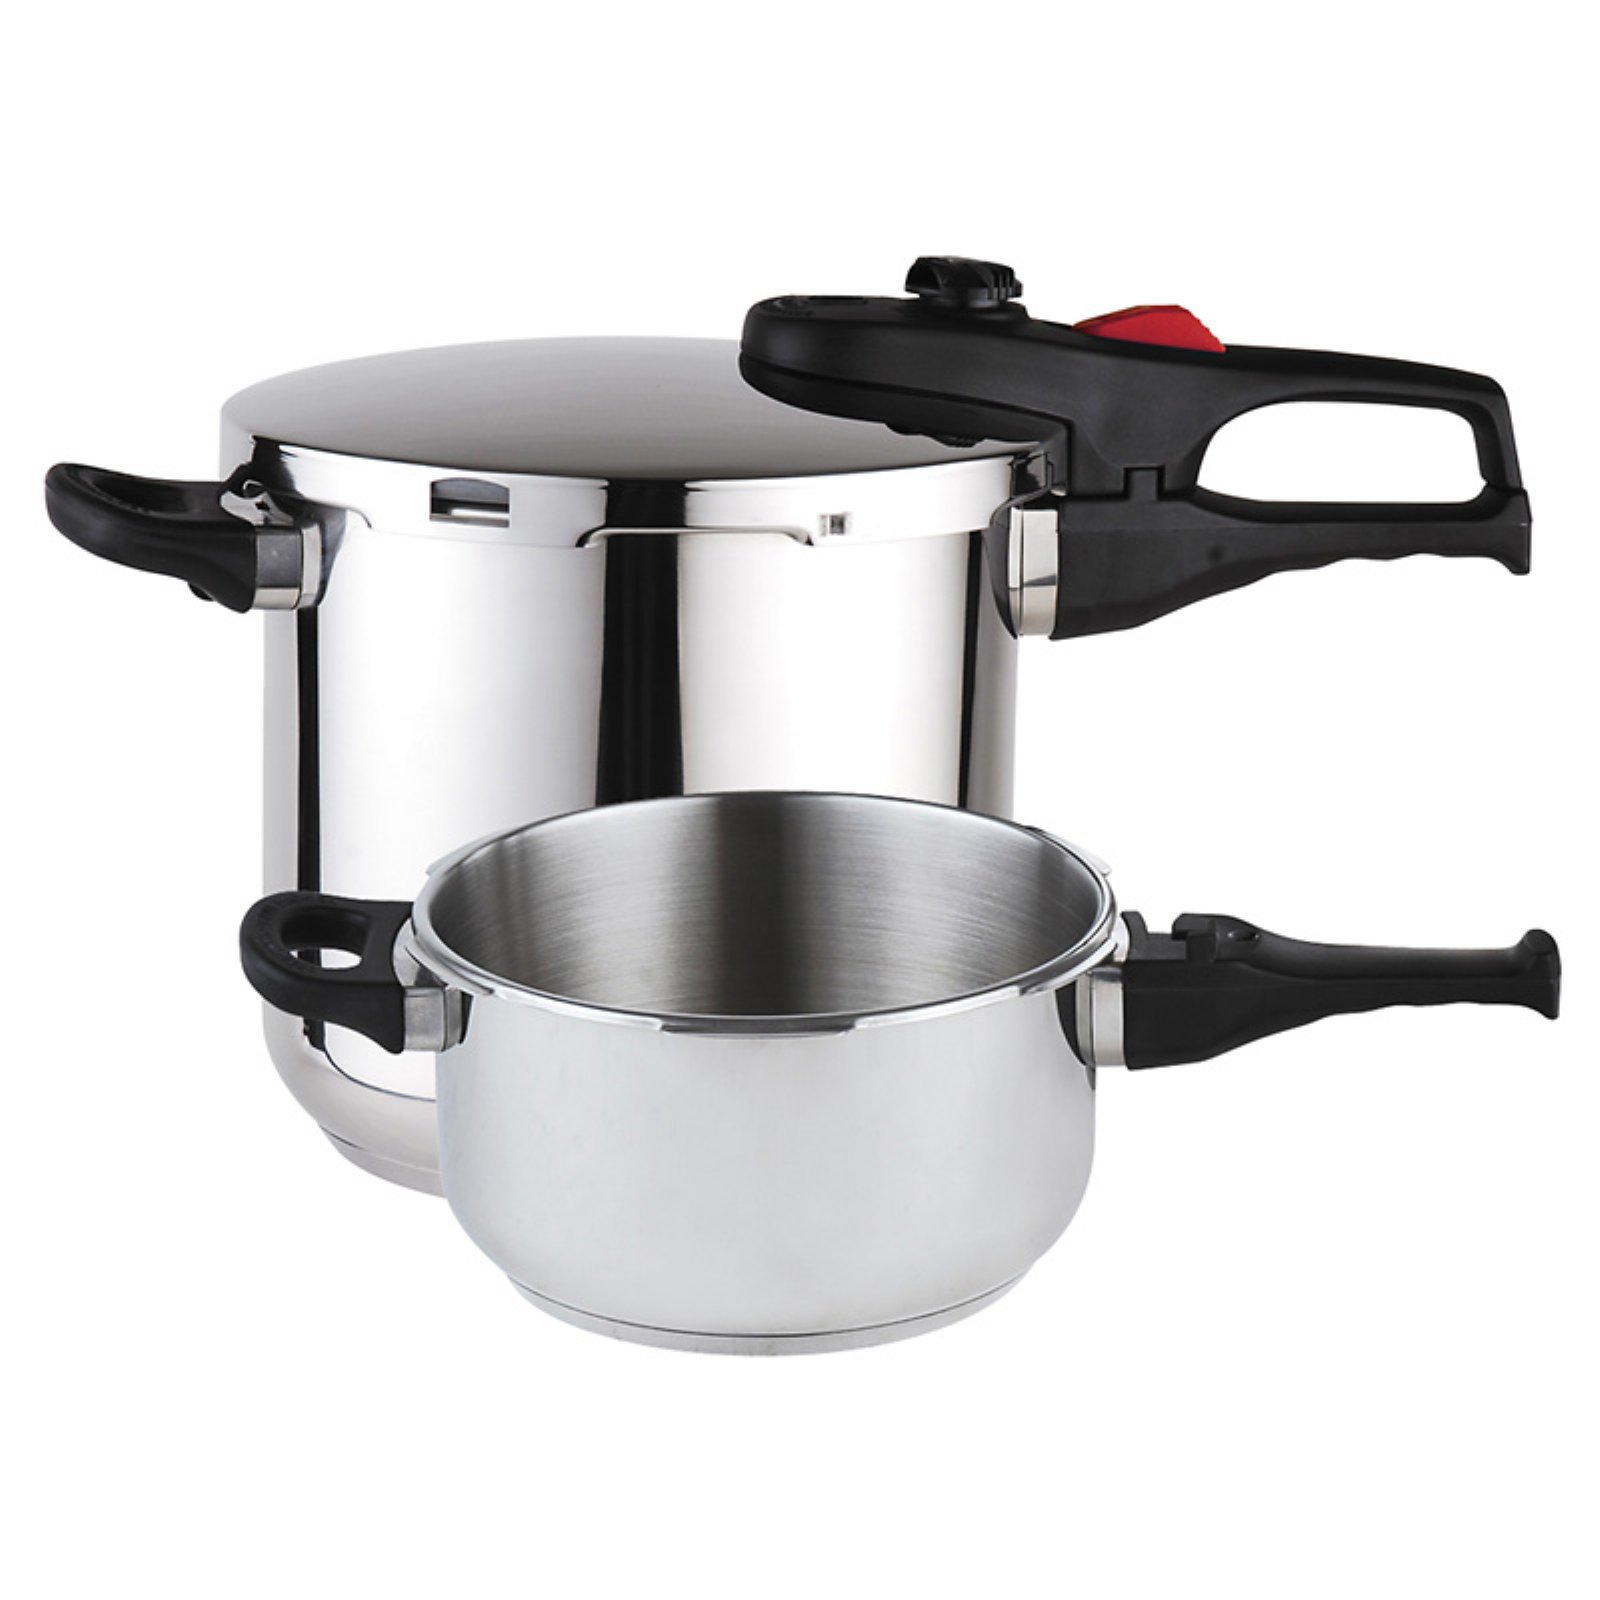 Practika Plus 4+6 Qts. Stainless Steel Pressure Cooker